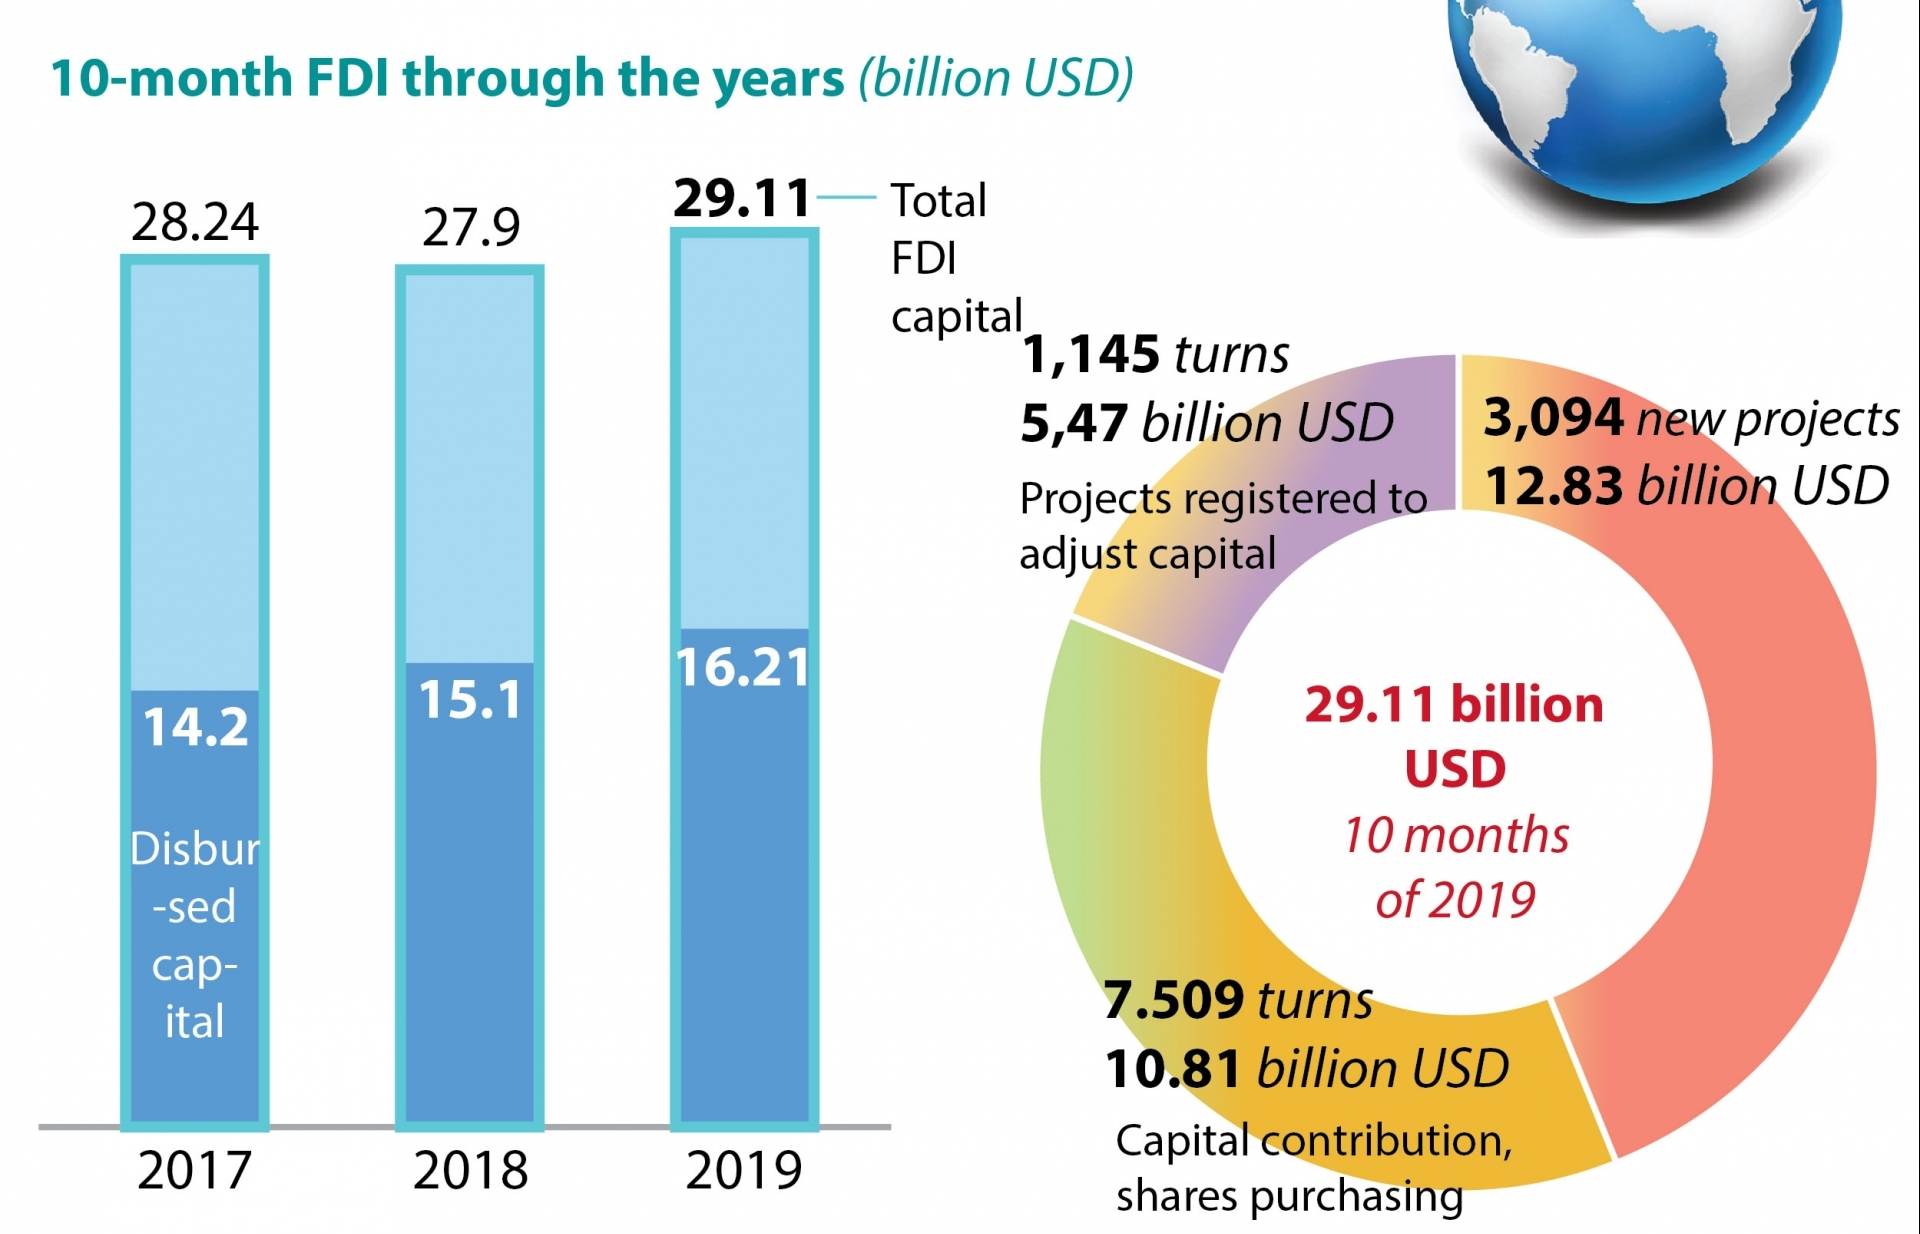 fdi attracts 2911 billion usd infographics